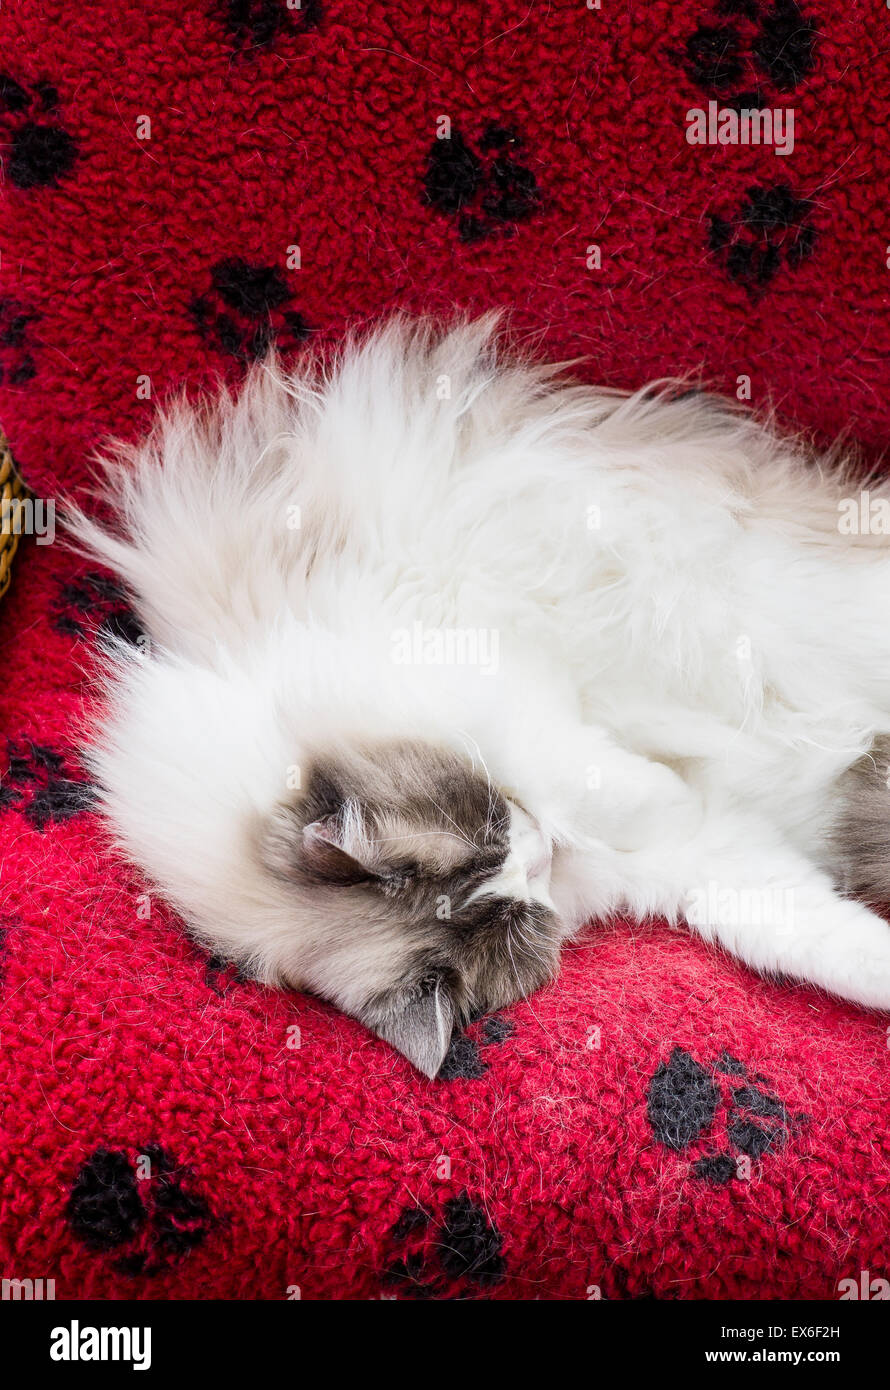 Ragdoll cat in a luxury red bed asleep - Stock Image